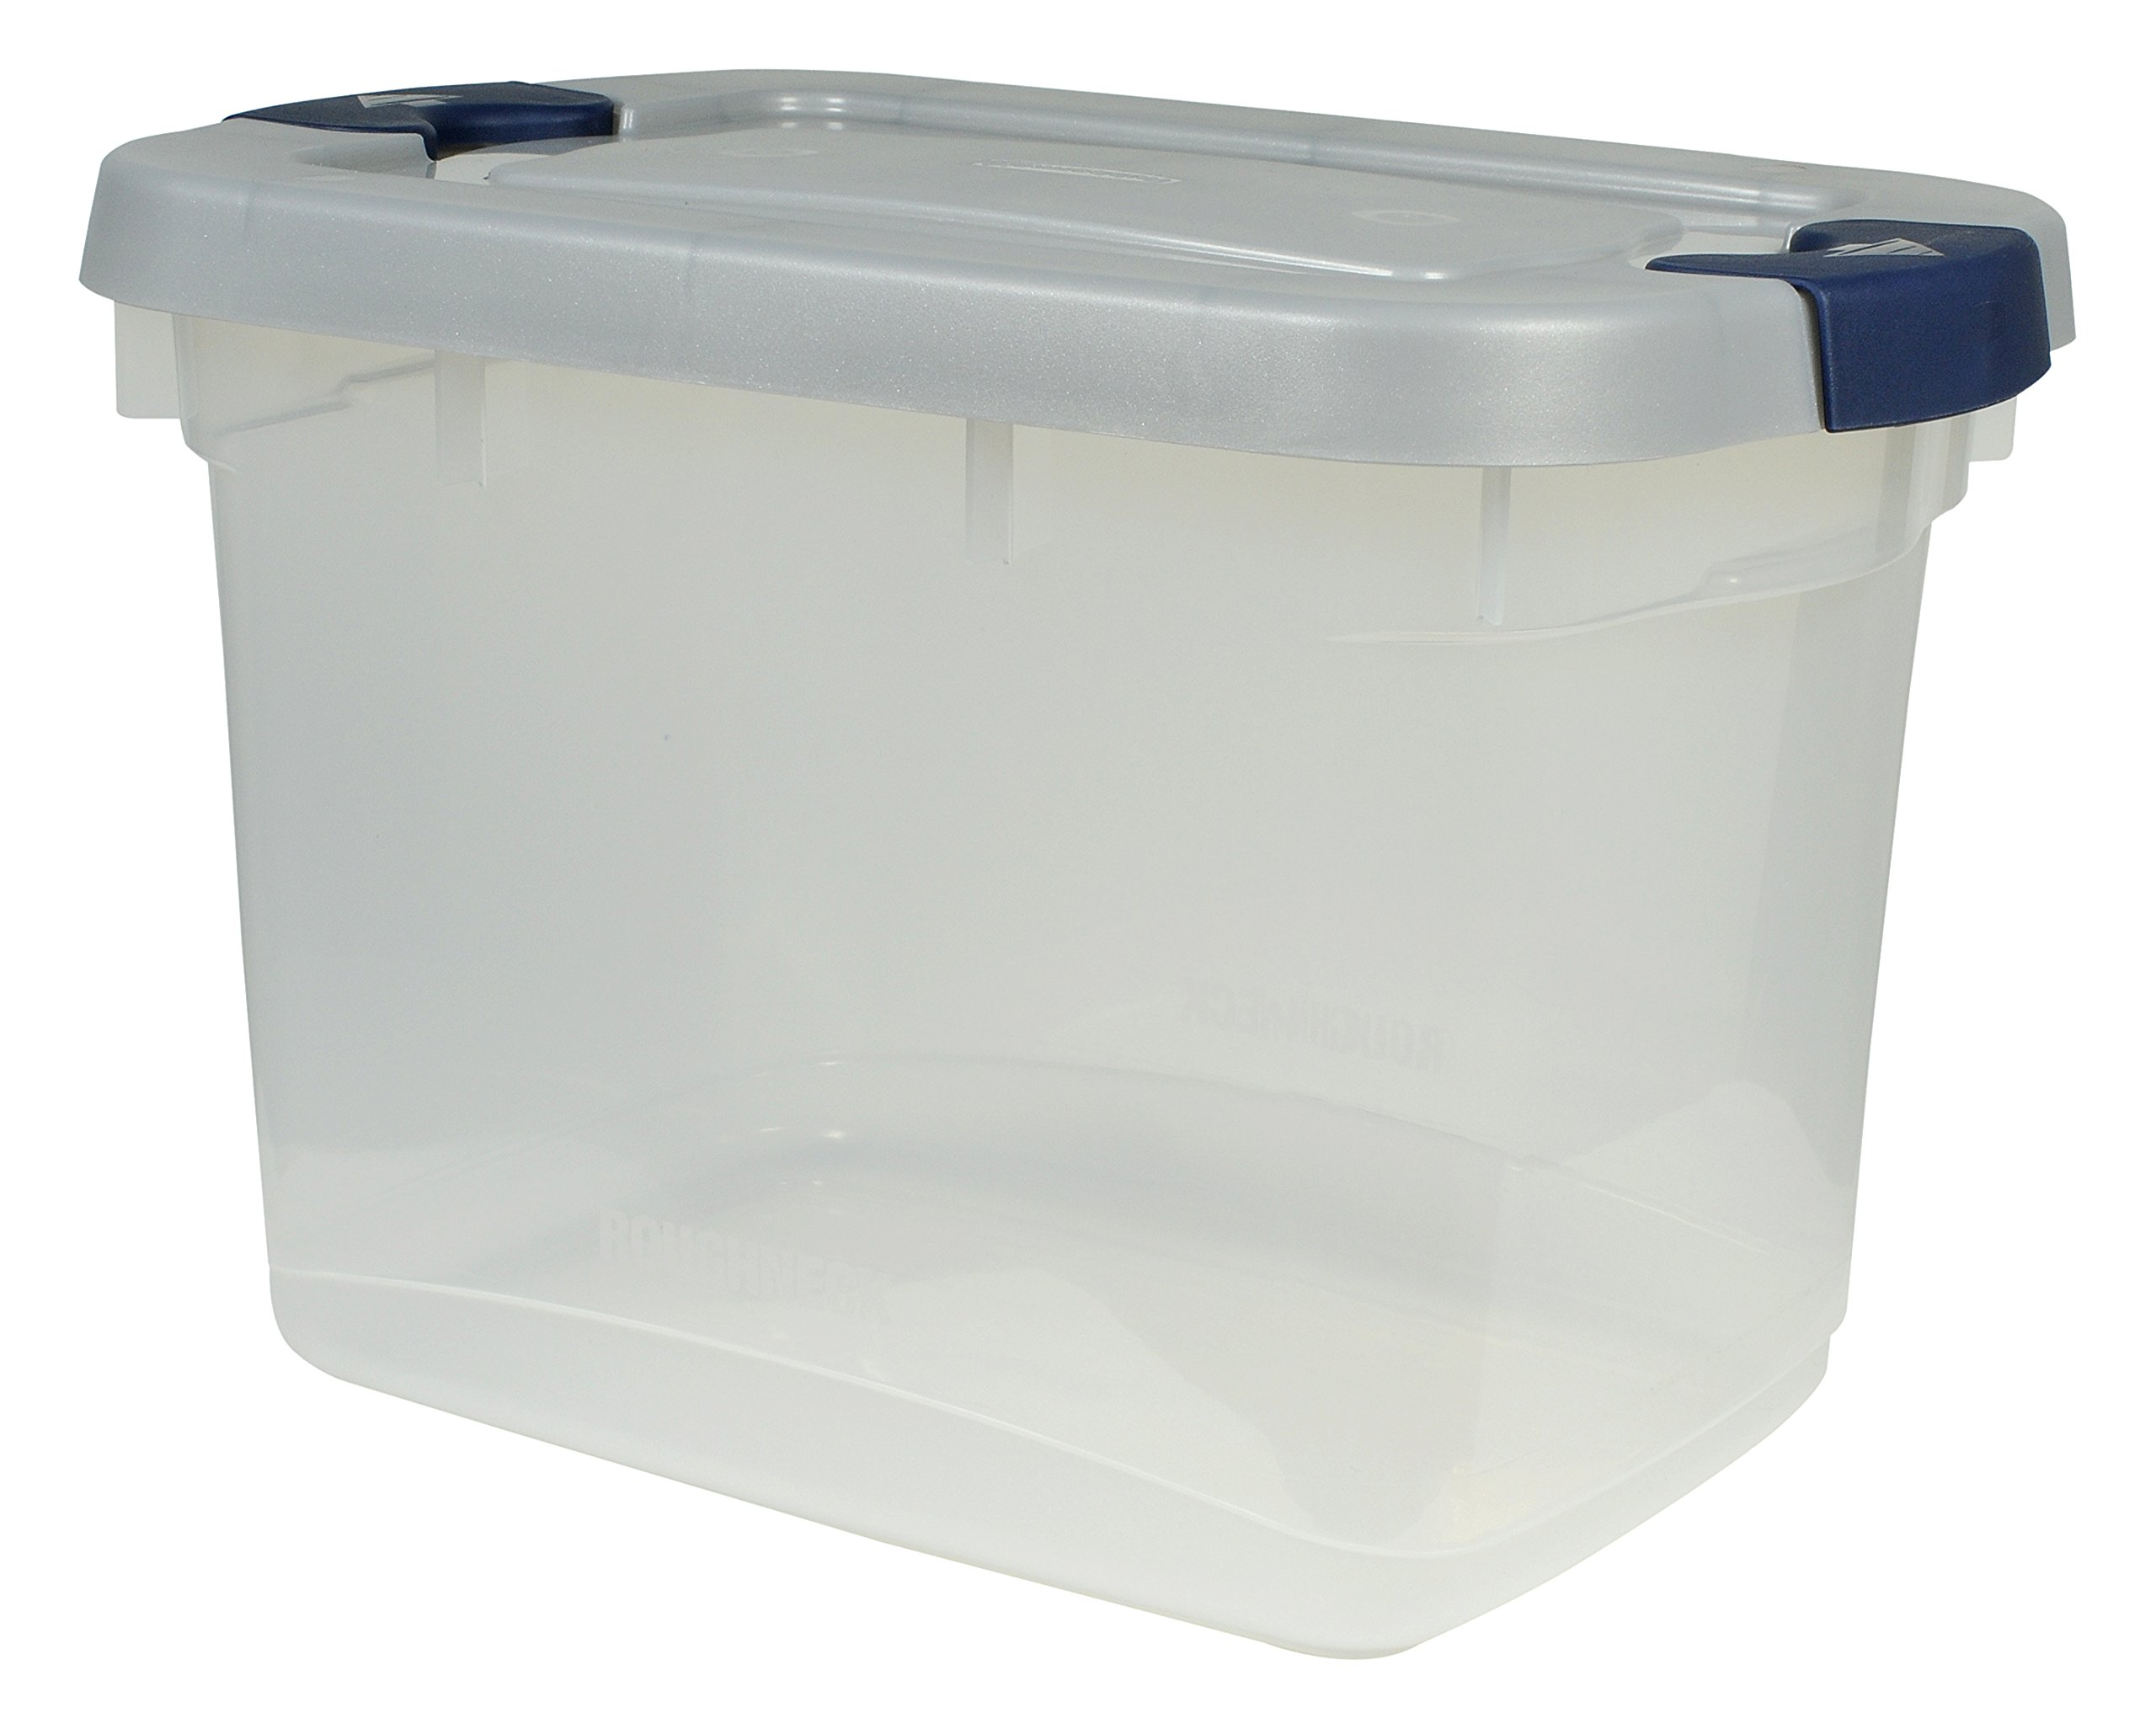 Rubbermaid 1785782 Roughneck Clear Tote, 19-Quart, 8 Pack by Rubbermaid